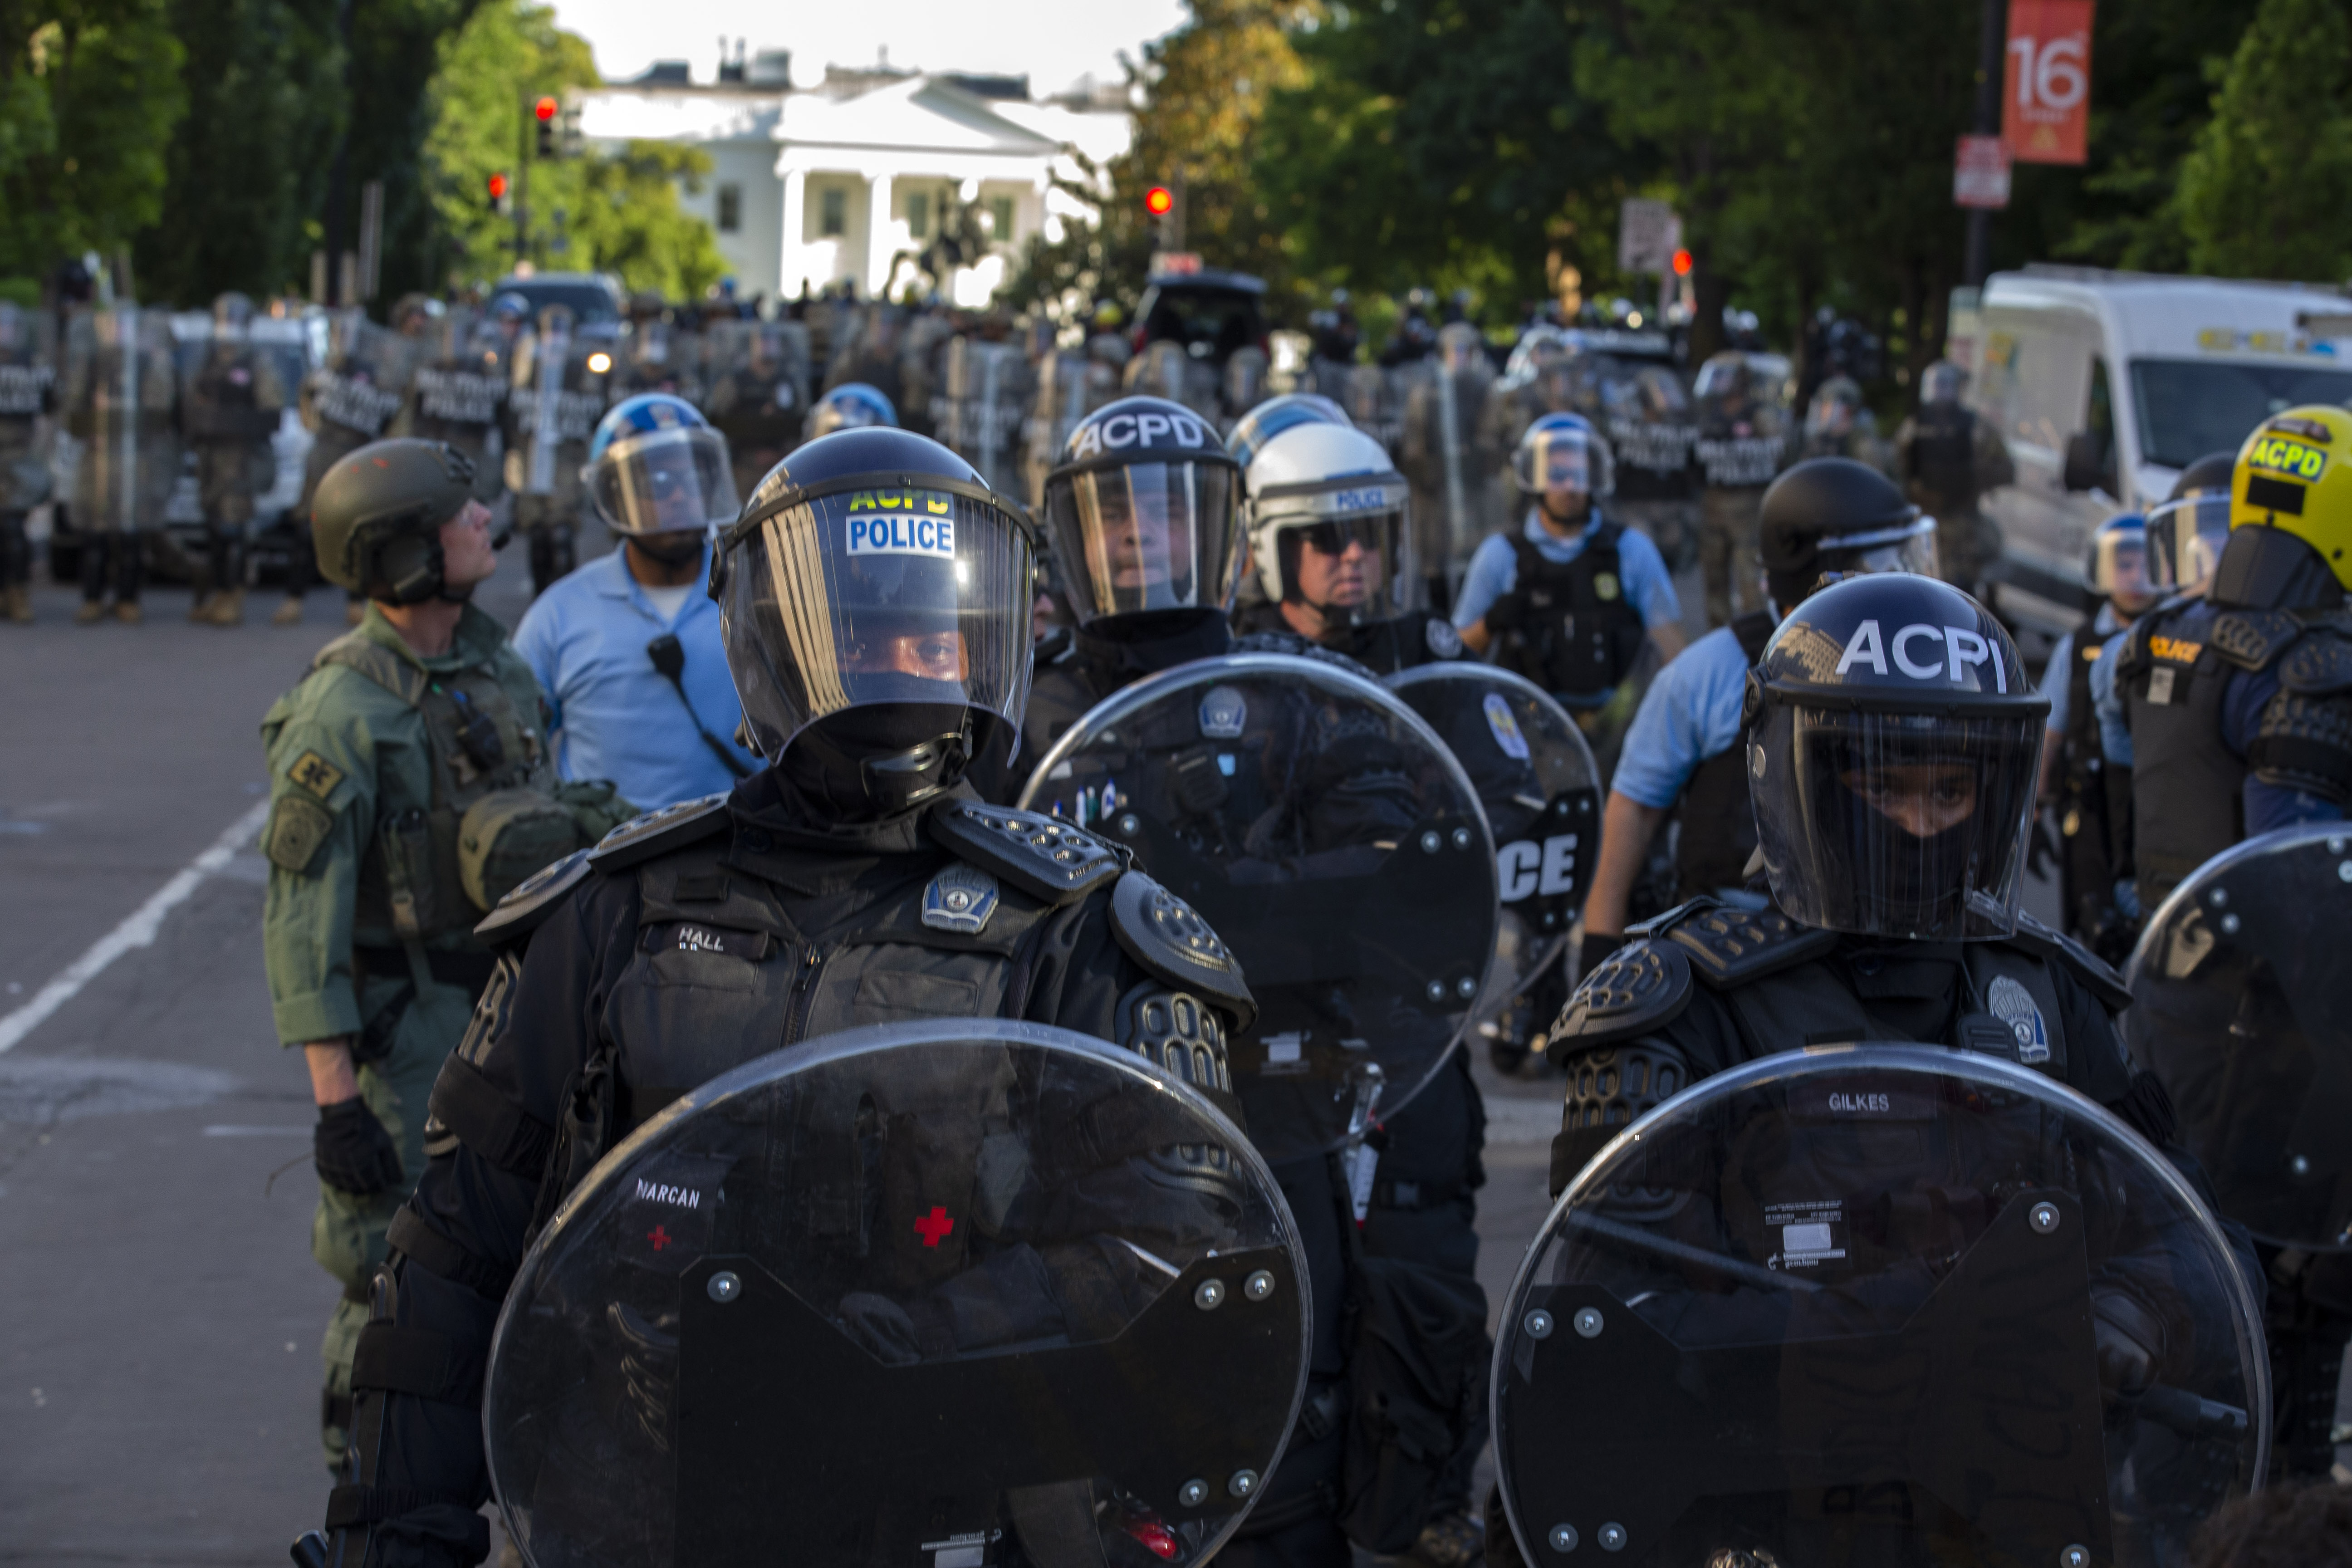 The White House is seen behind a line of police officers wearing riot gear as they push back demonstrators on June 1, 2020 in Washington D.C., during a protest over the death of George Floyd. - (Photo by JOSE LUIS MAGANA/AFP via Getty Images)